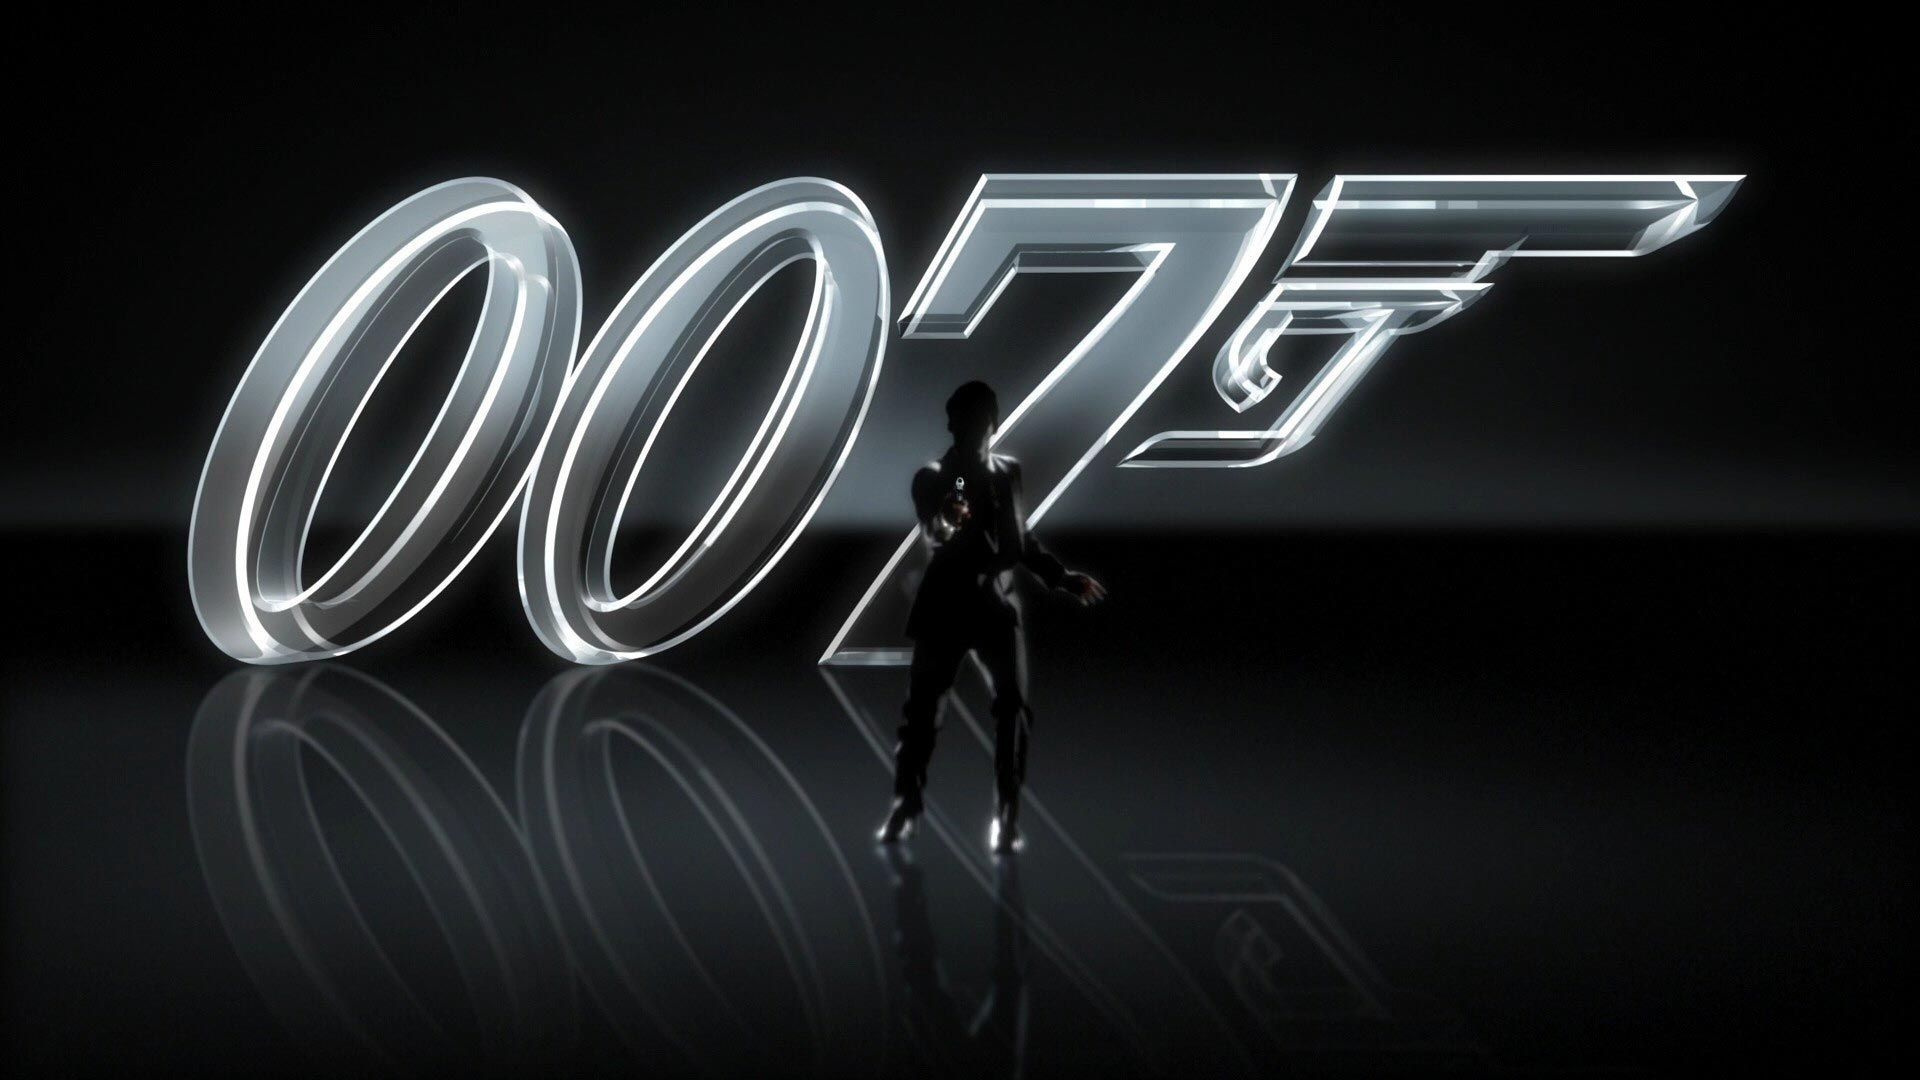 Wallpaper Of James Bond